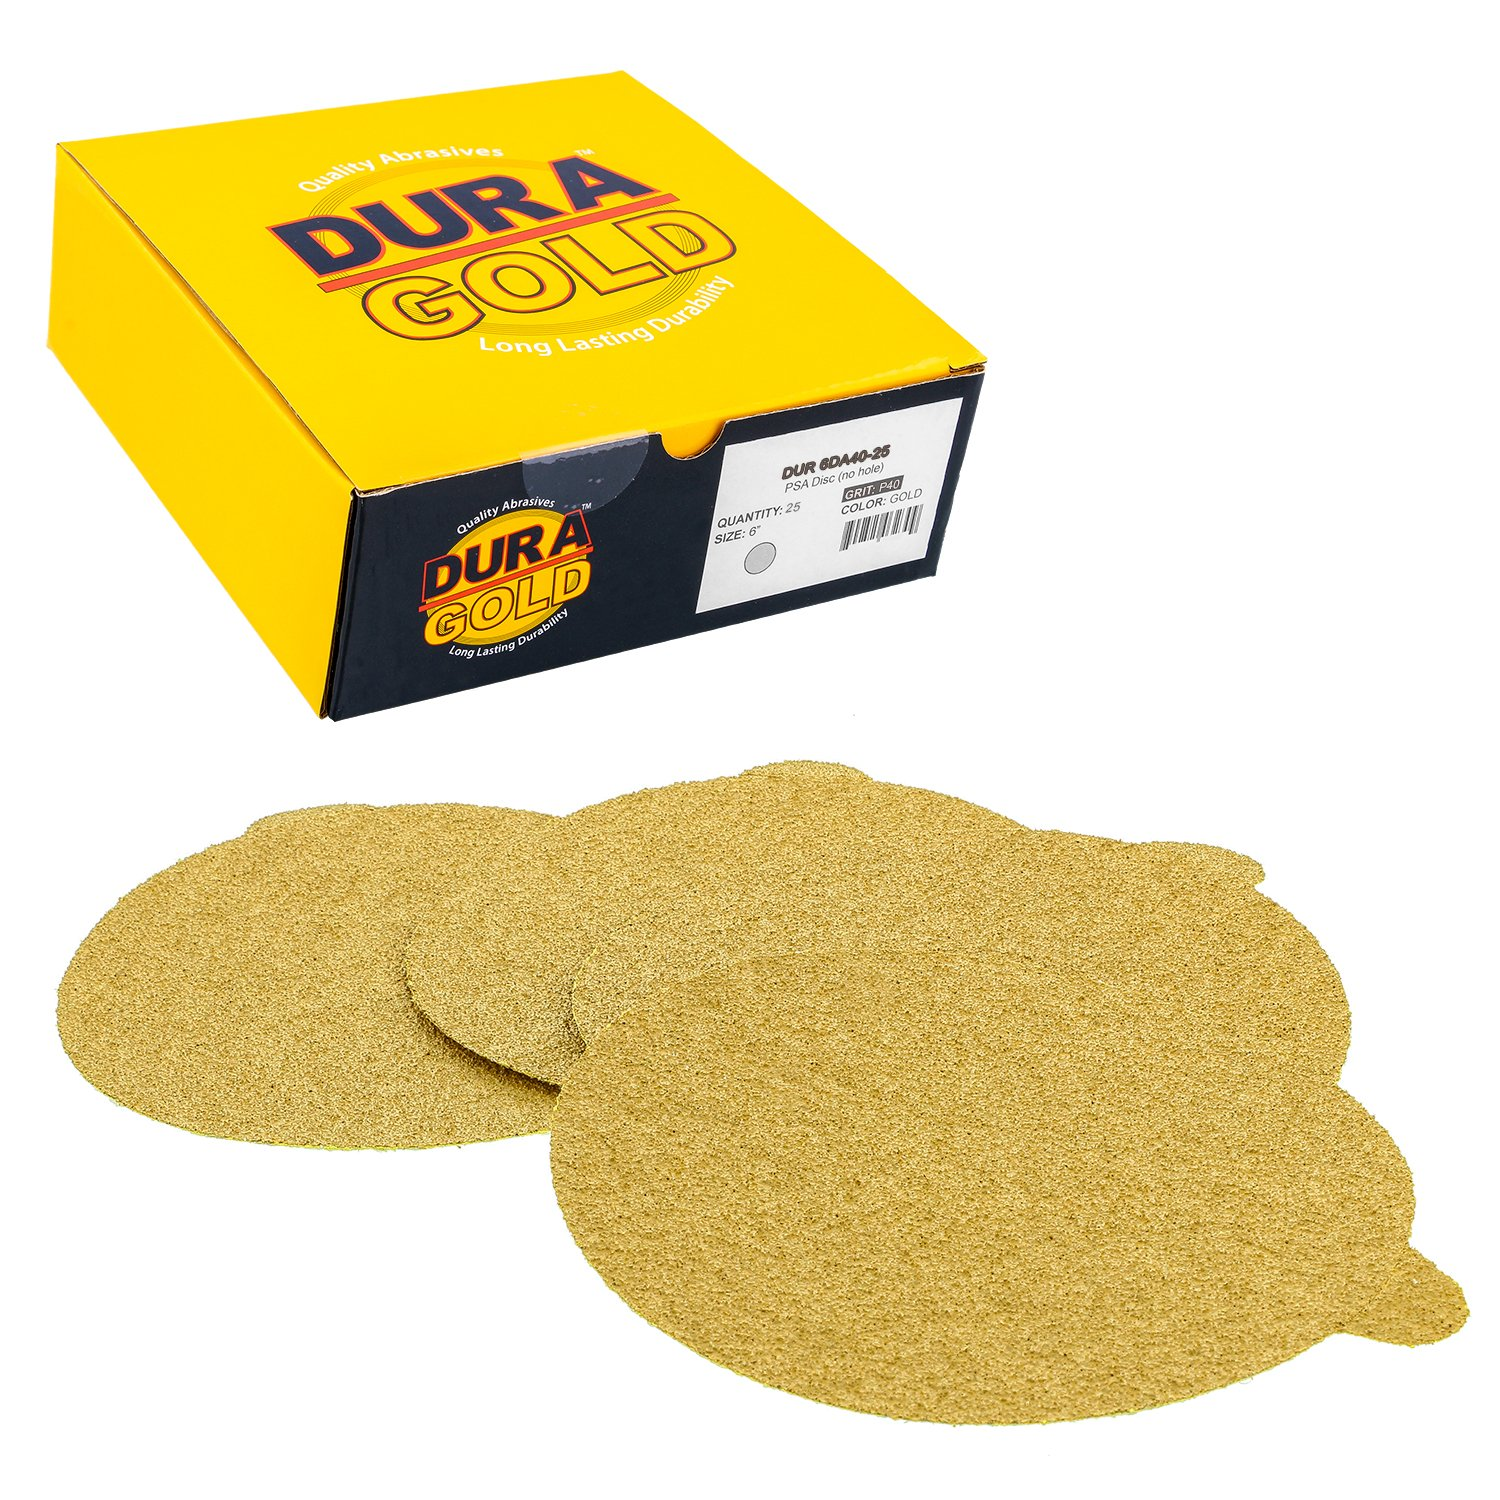 Dura-Gold Premium - 40 Grit 6'' Gold PSA Self Adhesive Stickyback Sanding Discs for DA Sanders - Box of 25 Sandpaper Finishing Discs for Automotive and Woodworking by Dura-Gold (Image #1)